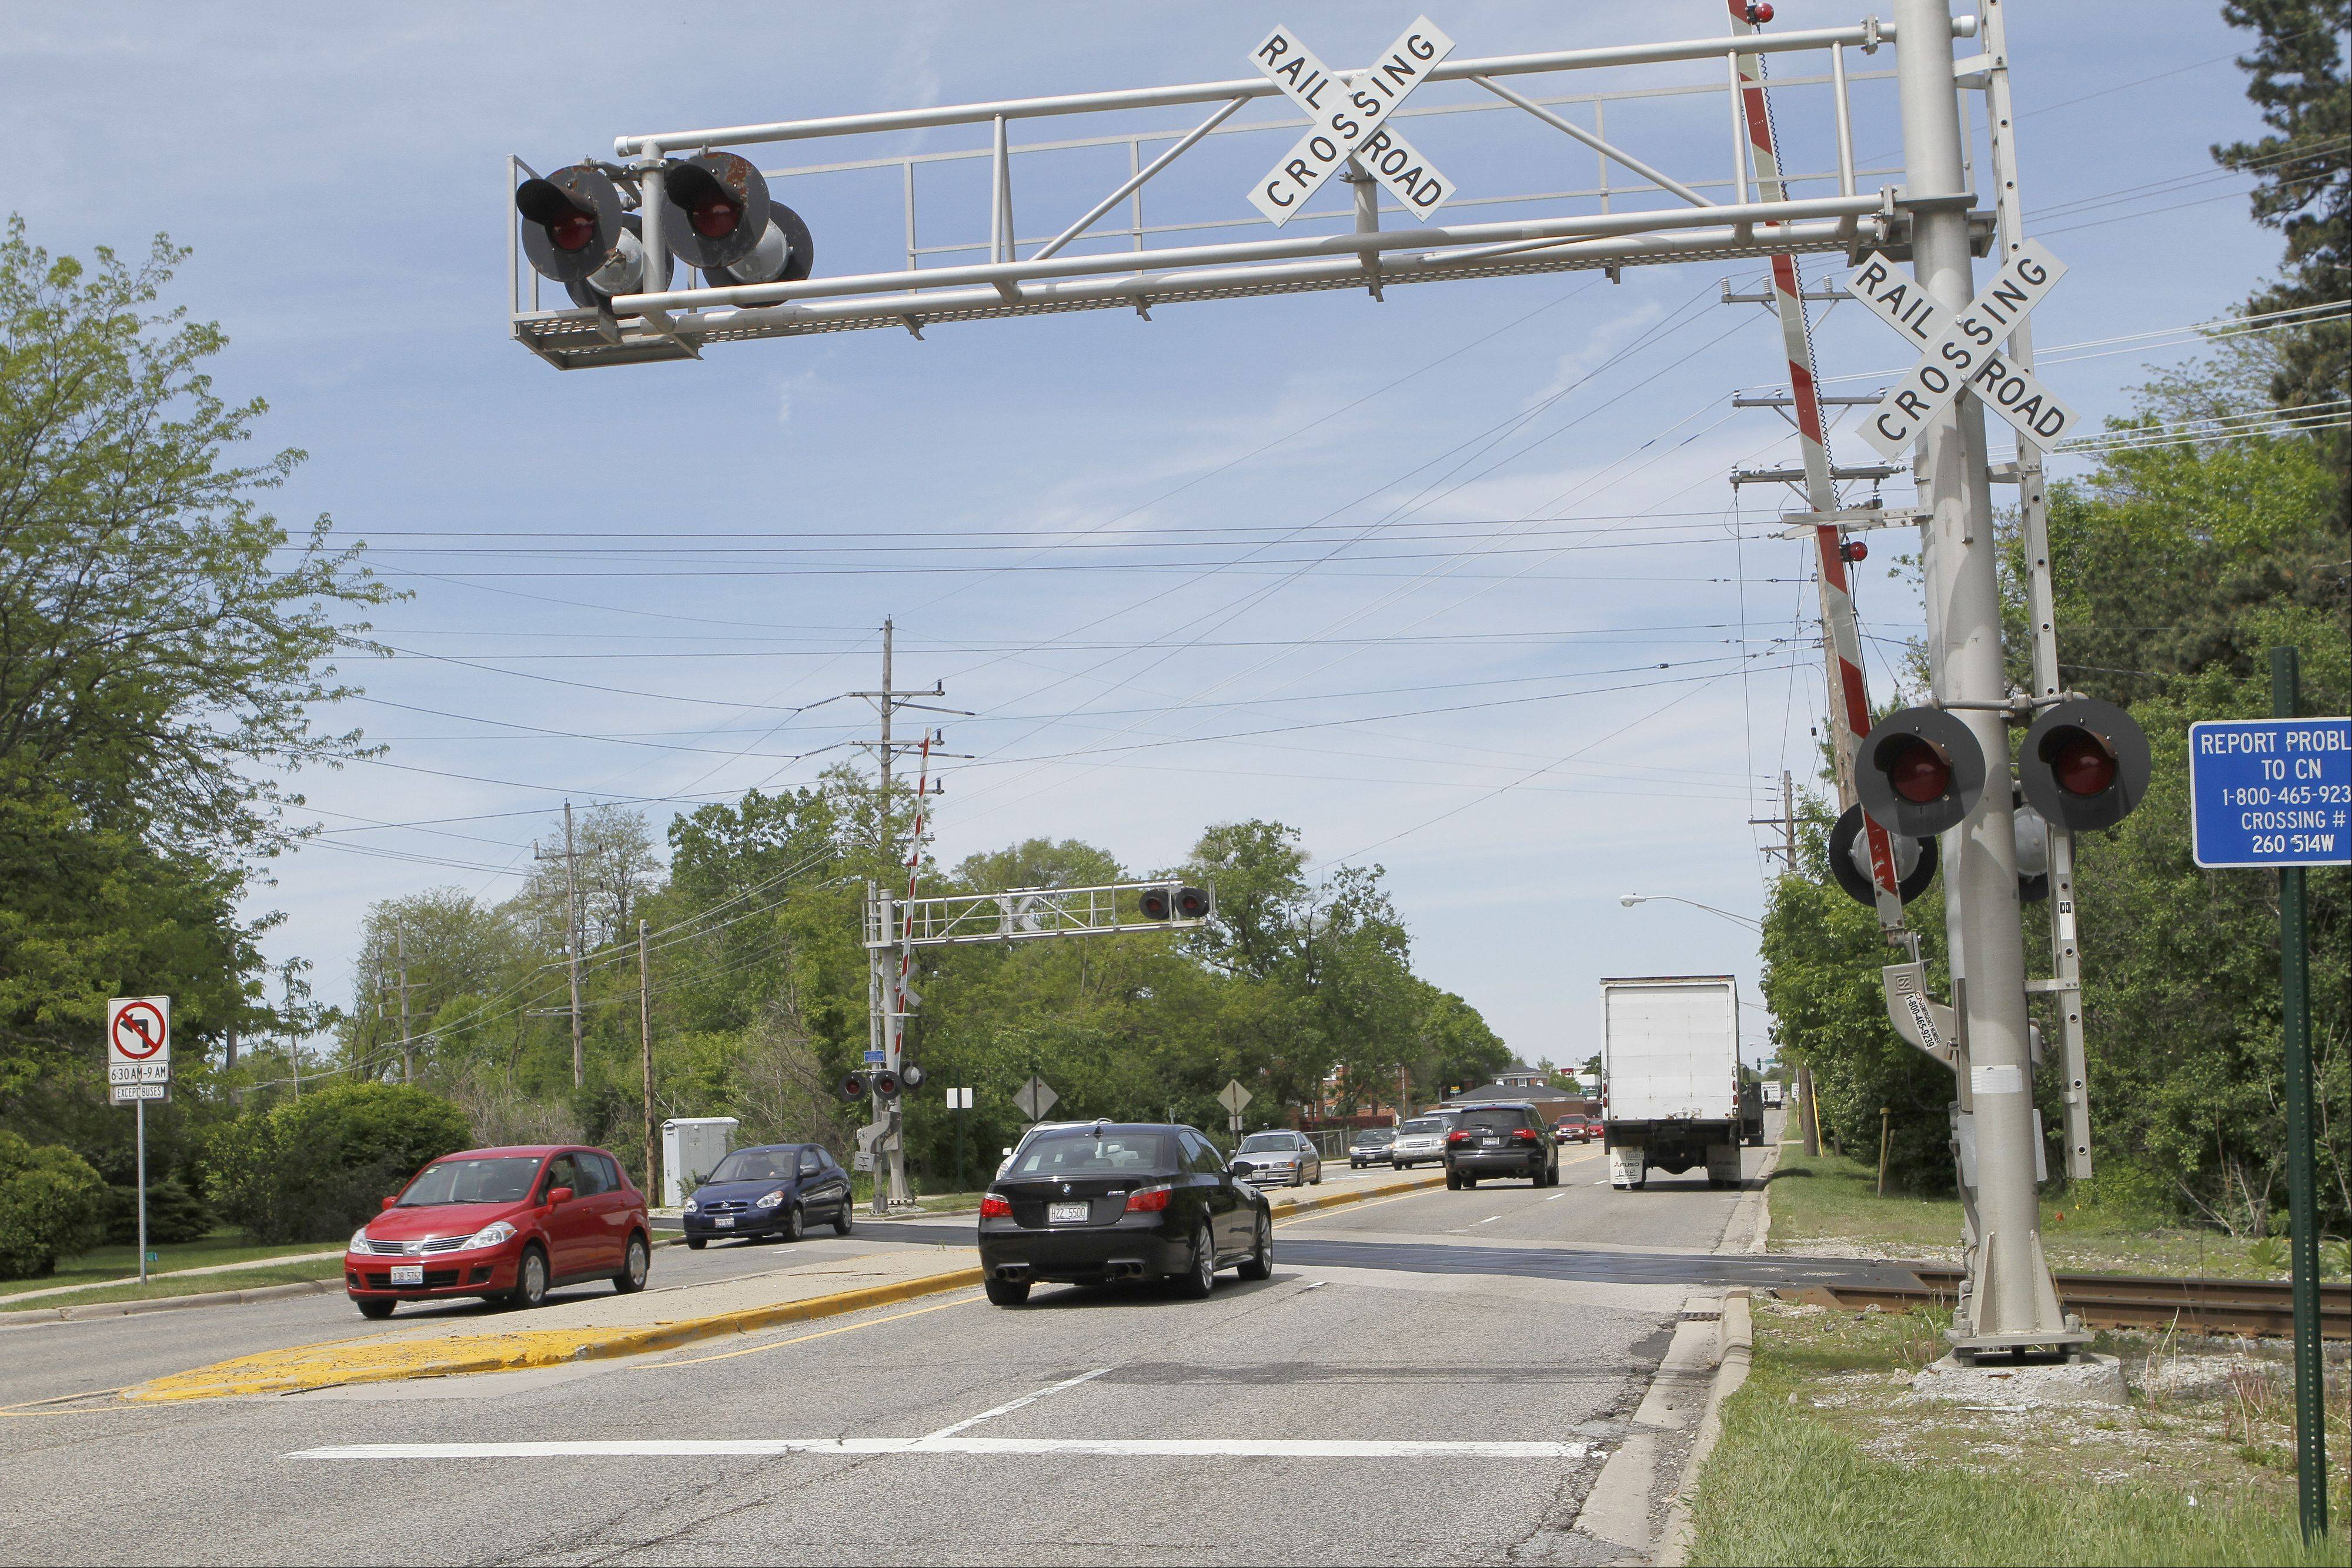 Options for either a Route 14 underpass or overpass are being considered for the currently at-grade crossing of the Canadian National railroad tracks in Barrington.